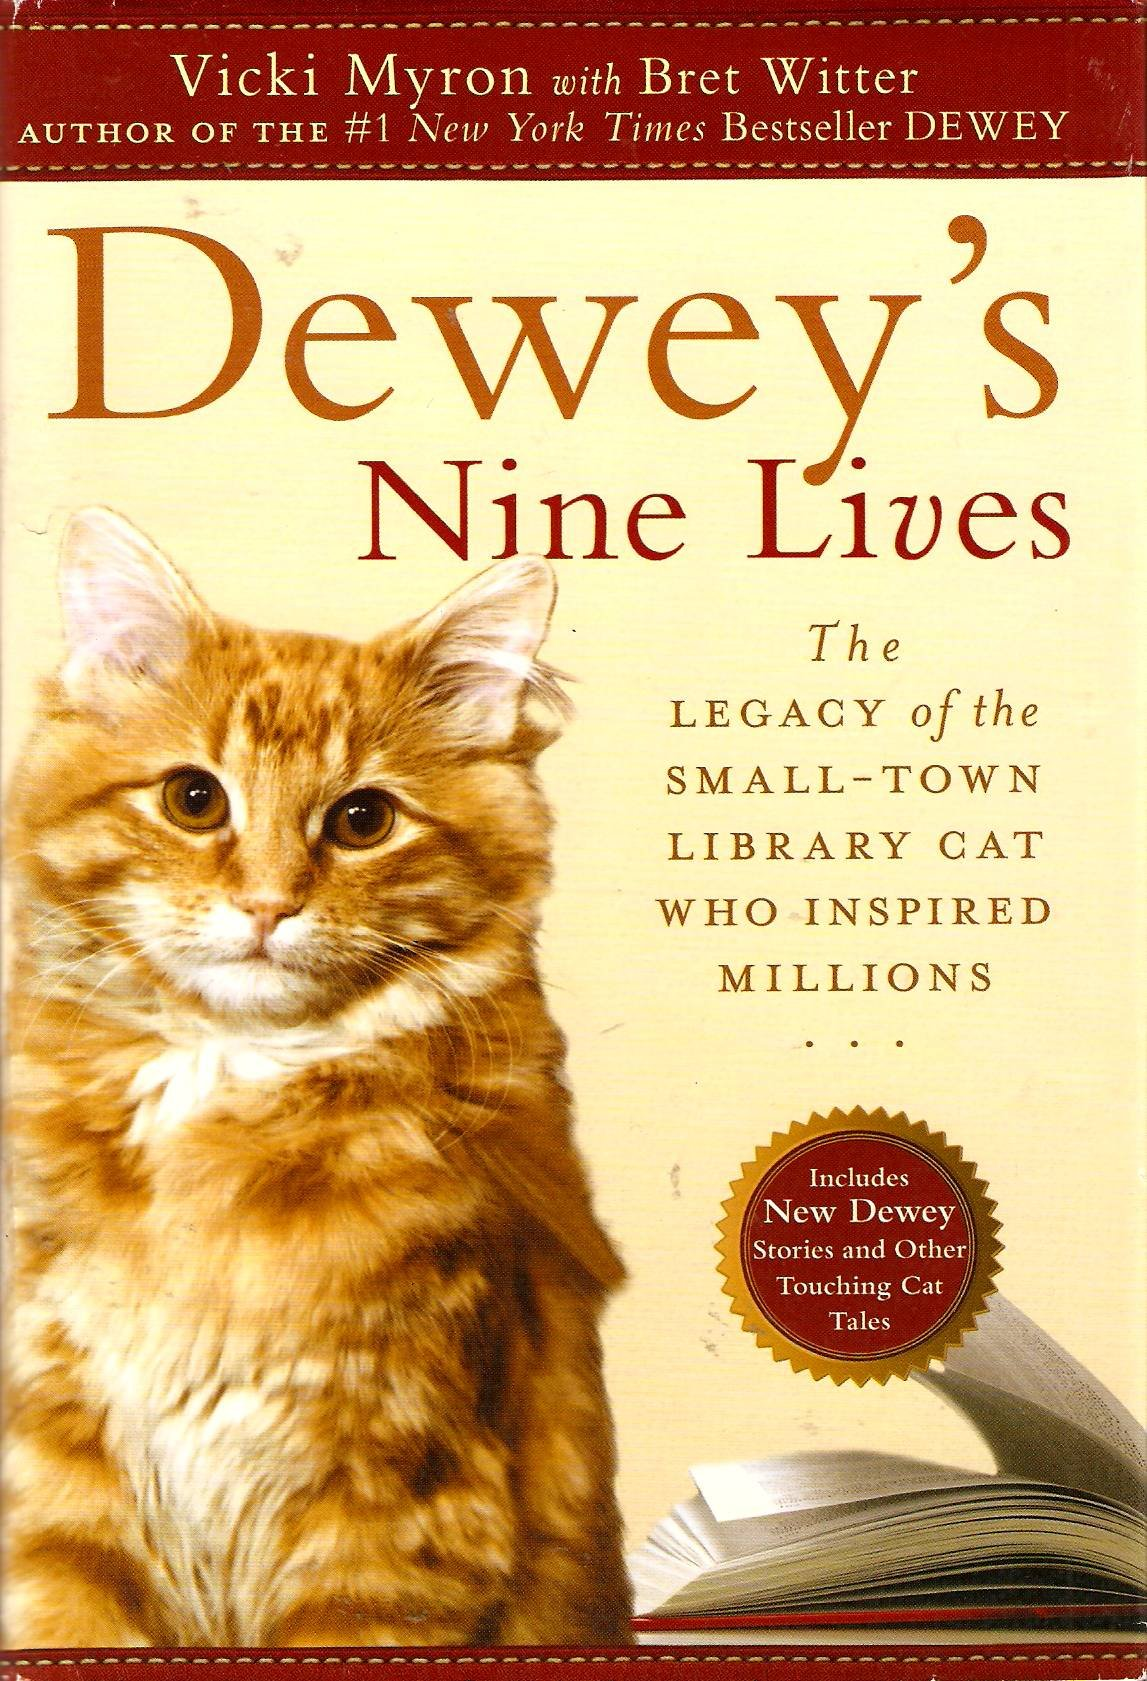 Dewey's Nine Lives: The Legacy of the Small-town Library Cat Who Inspired Millions [Large Print]